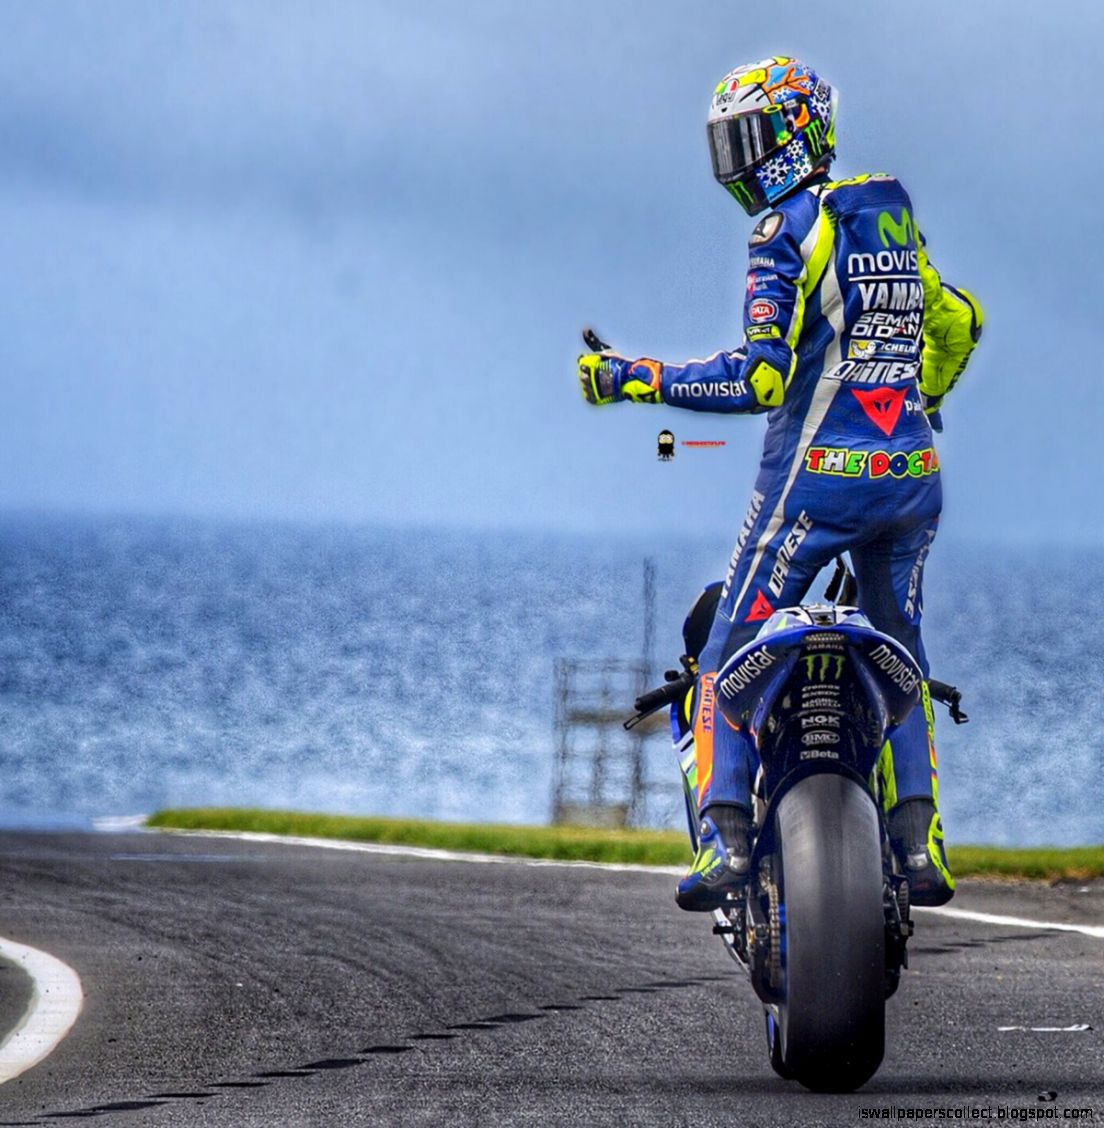 Motogp Wallpapers Full Hd Valentino Rossi The Doctor Hd Wallpaper For Wallpapers